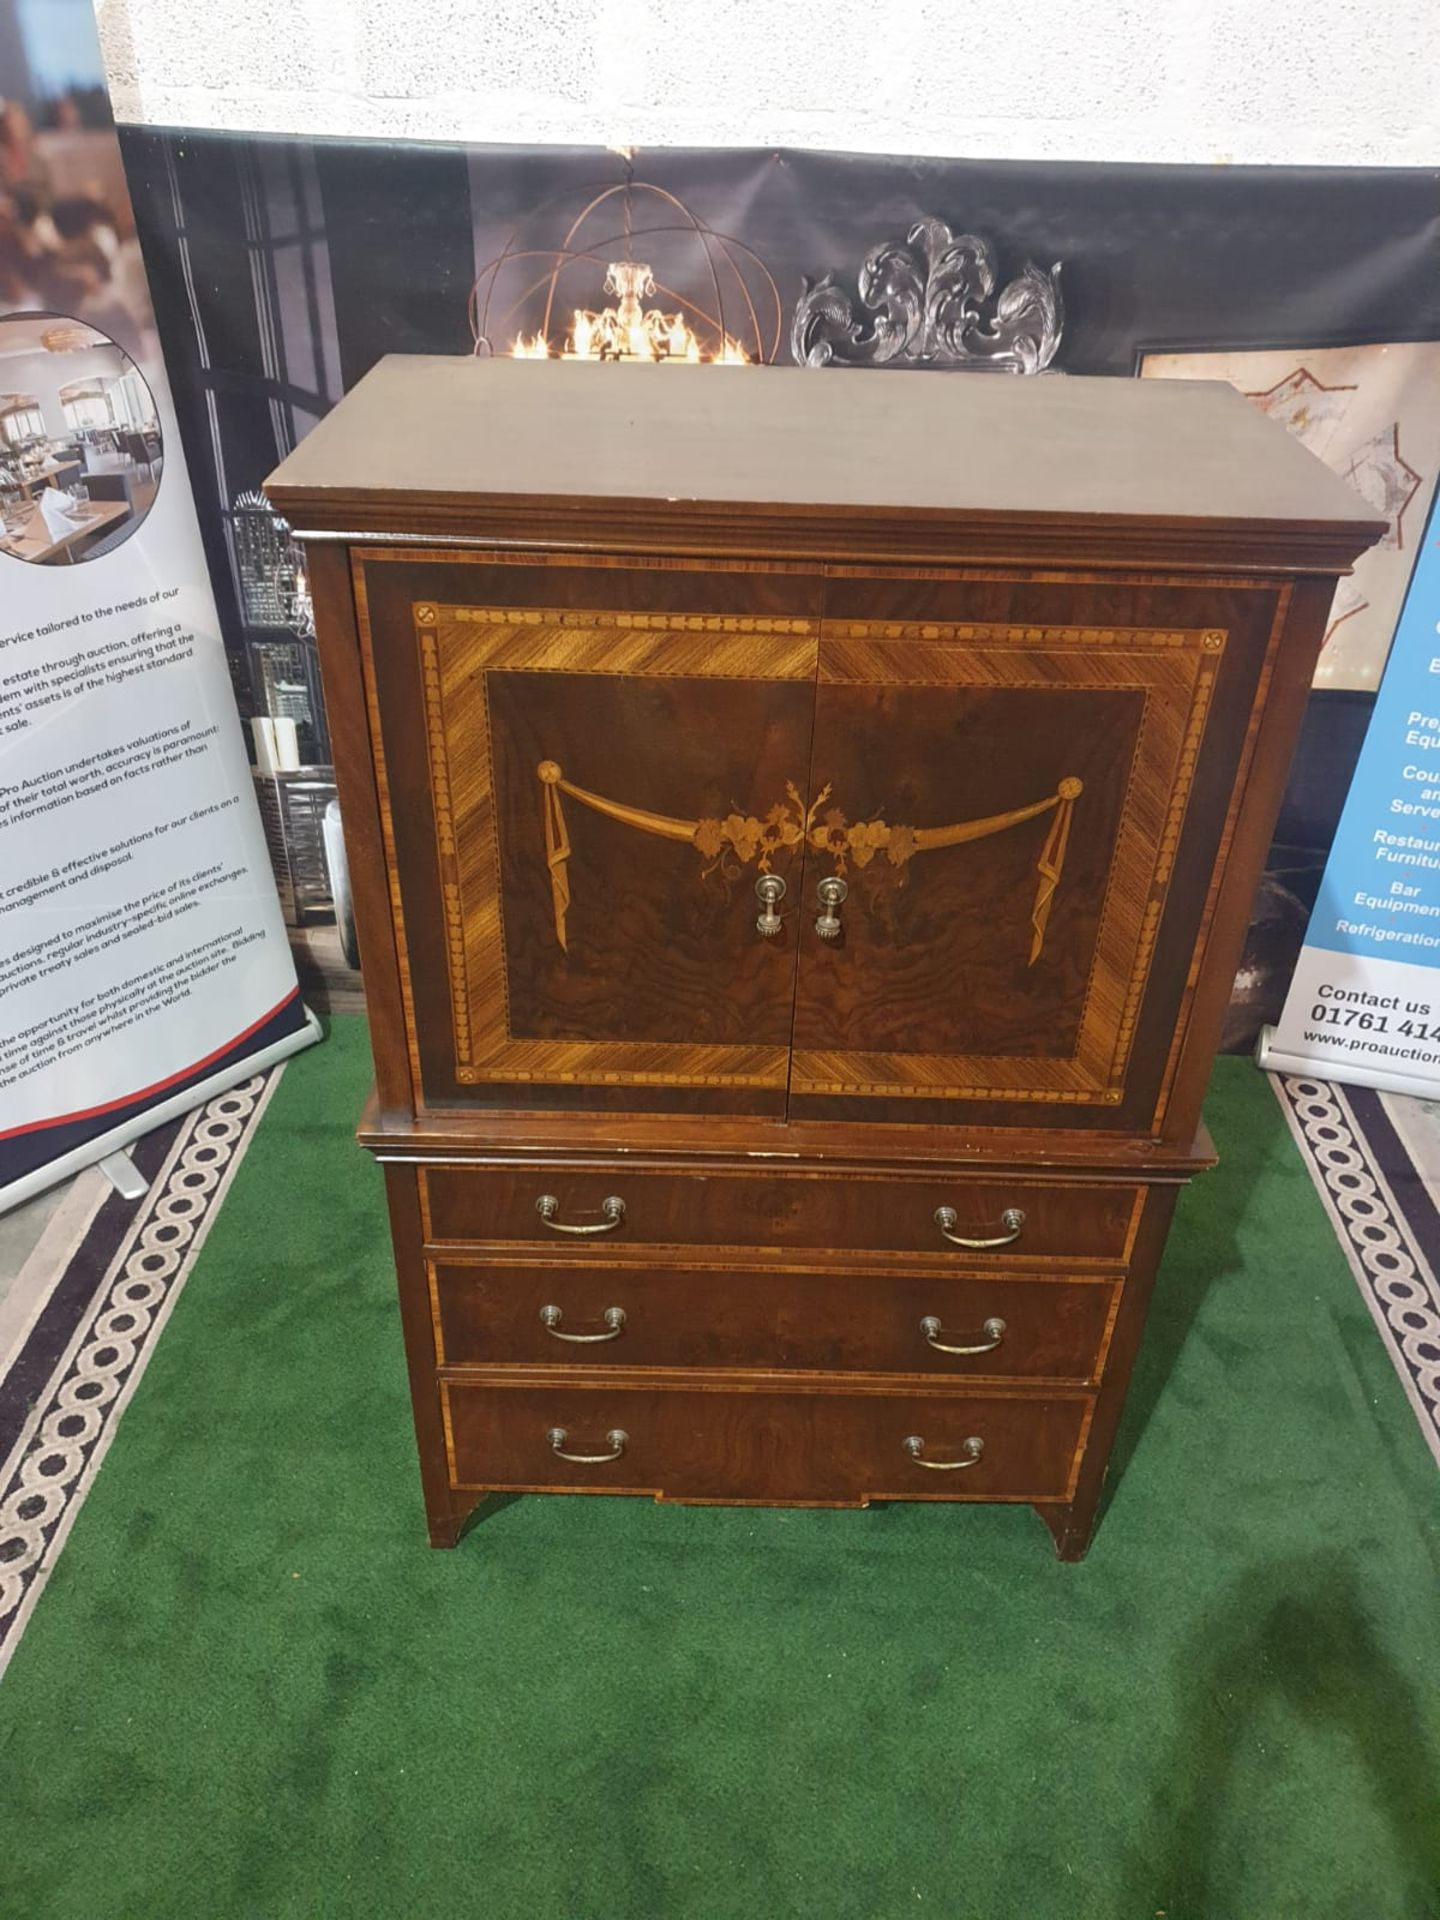 A Georgian style reproduction TV cabinet with three drawers under in mahogany veneers with a classic